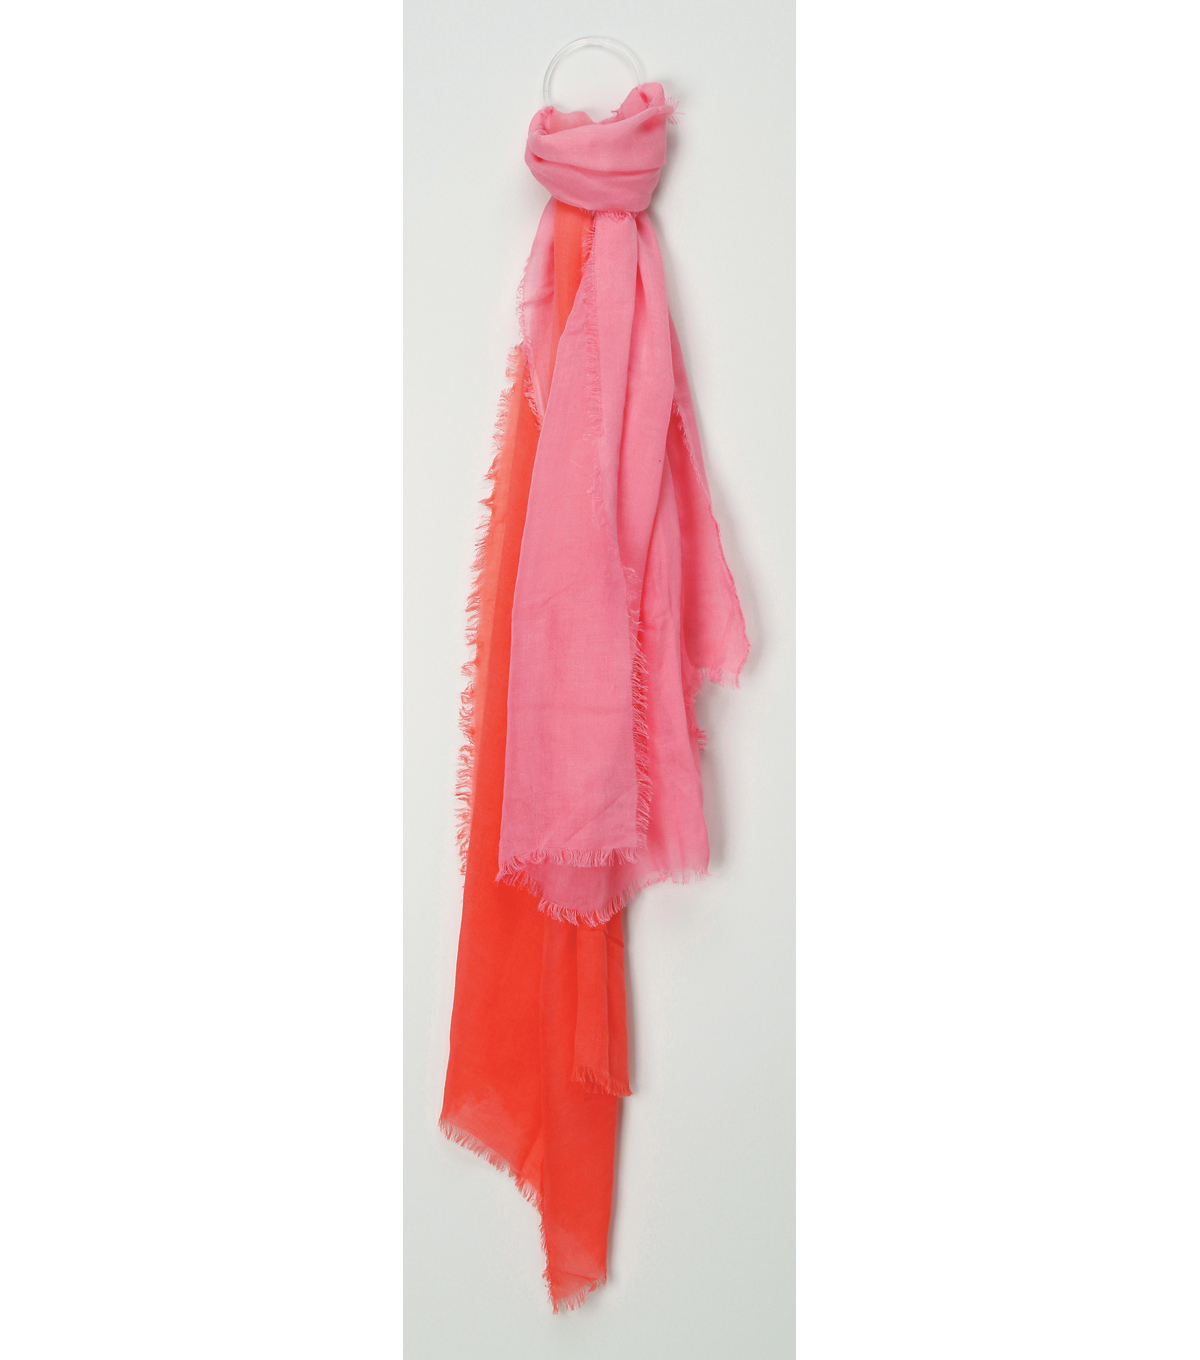 Oxford Street Jewelry Co. Pale to Hot Pink Scarf